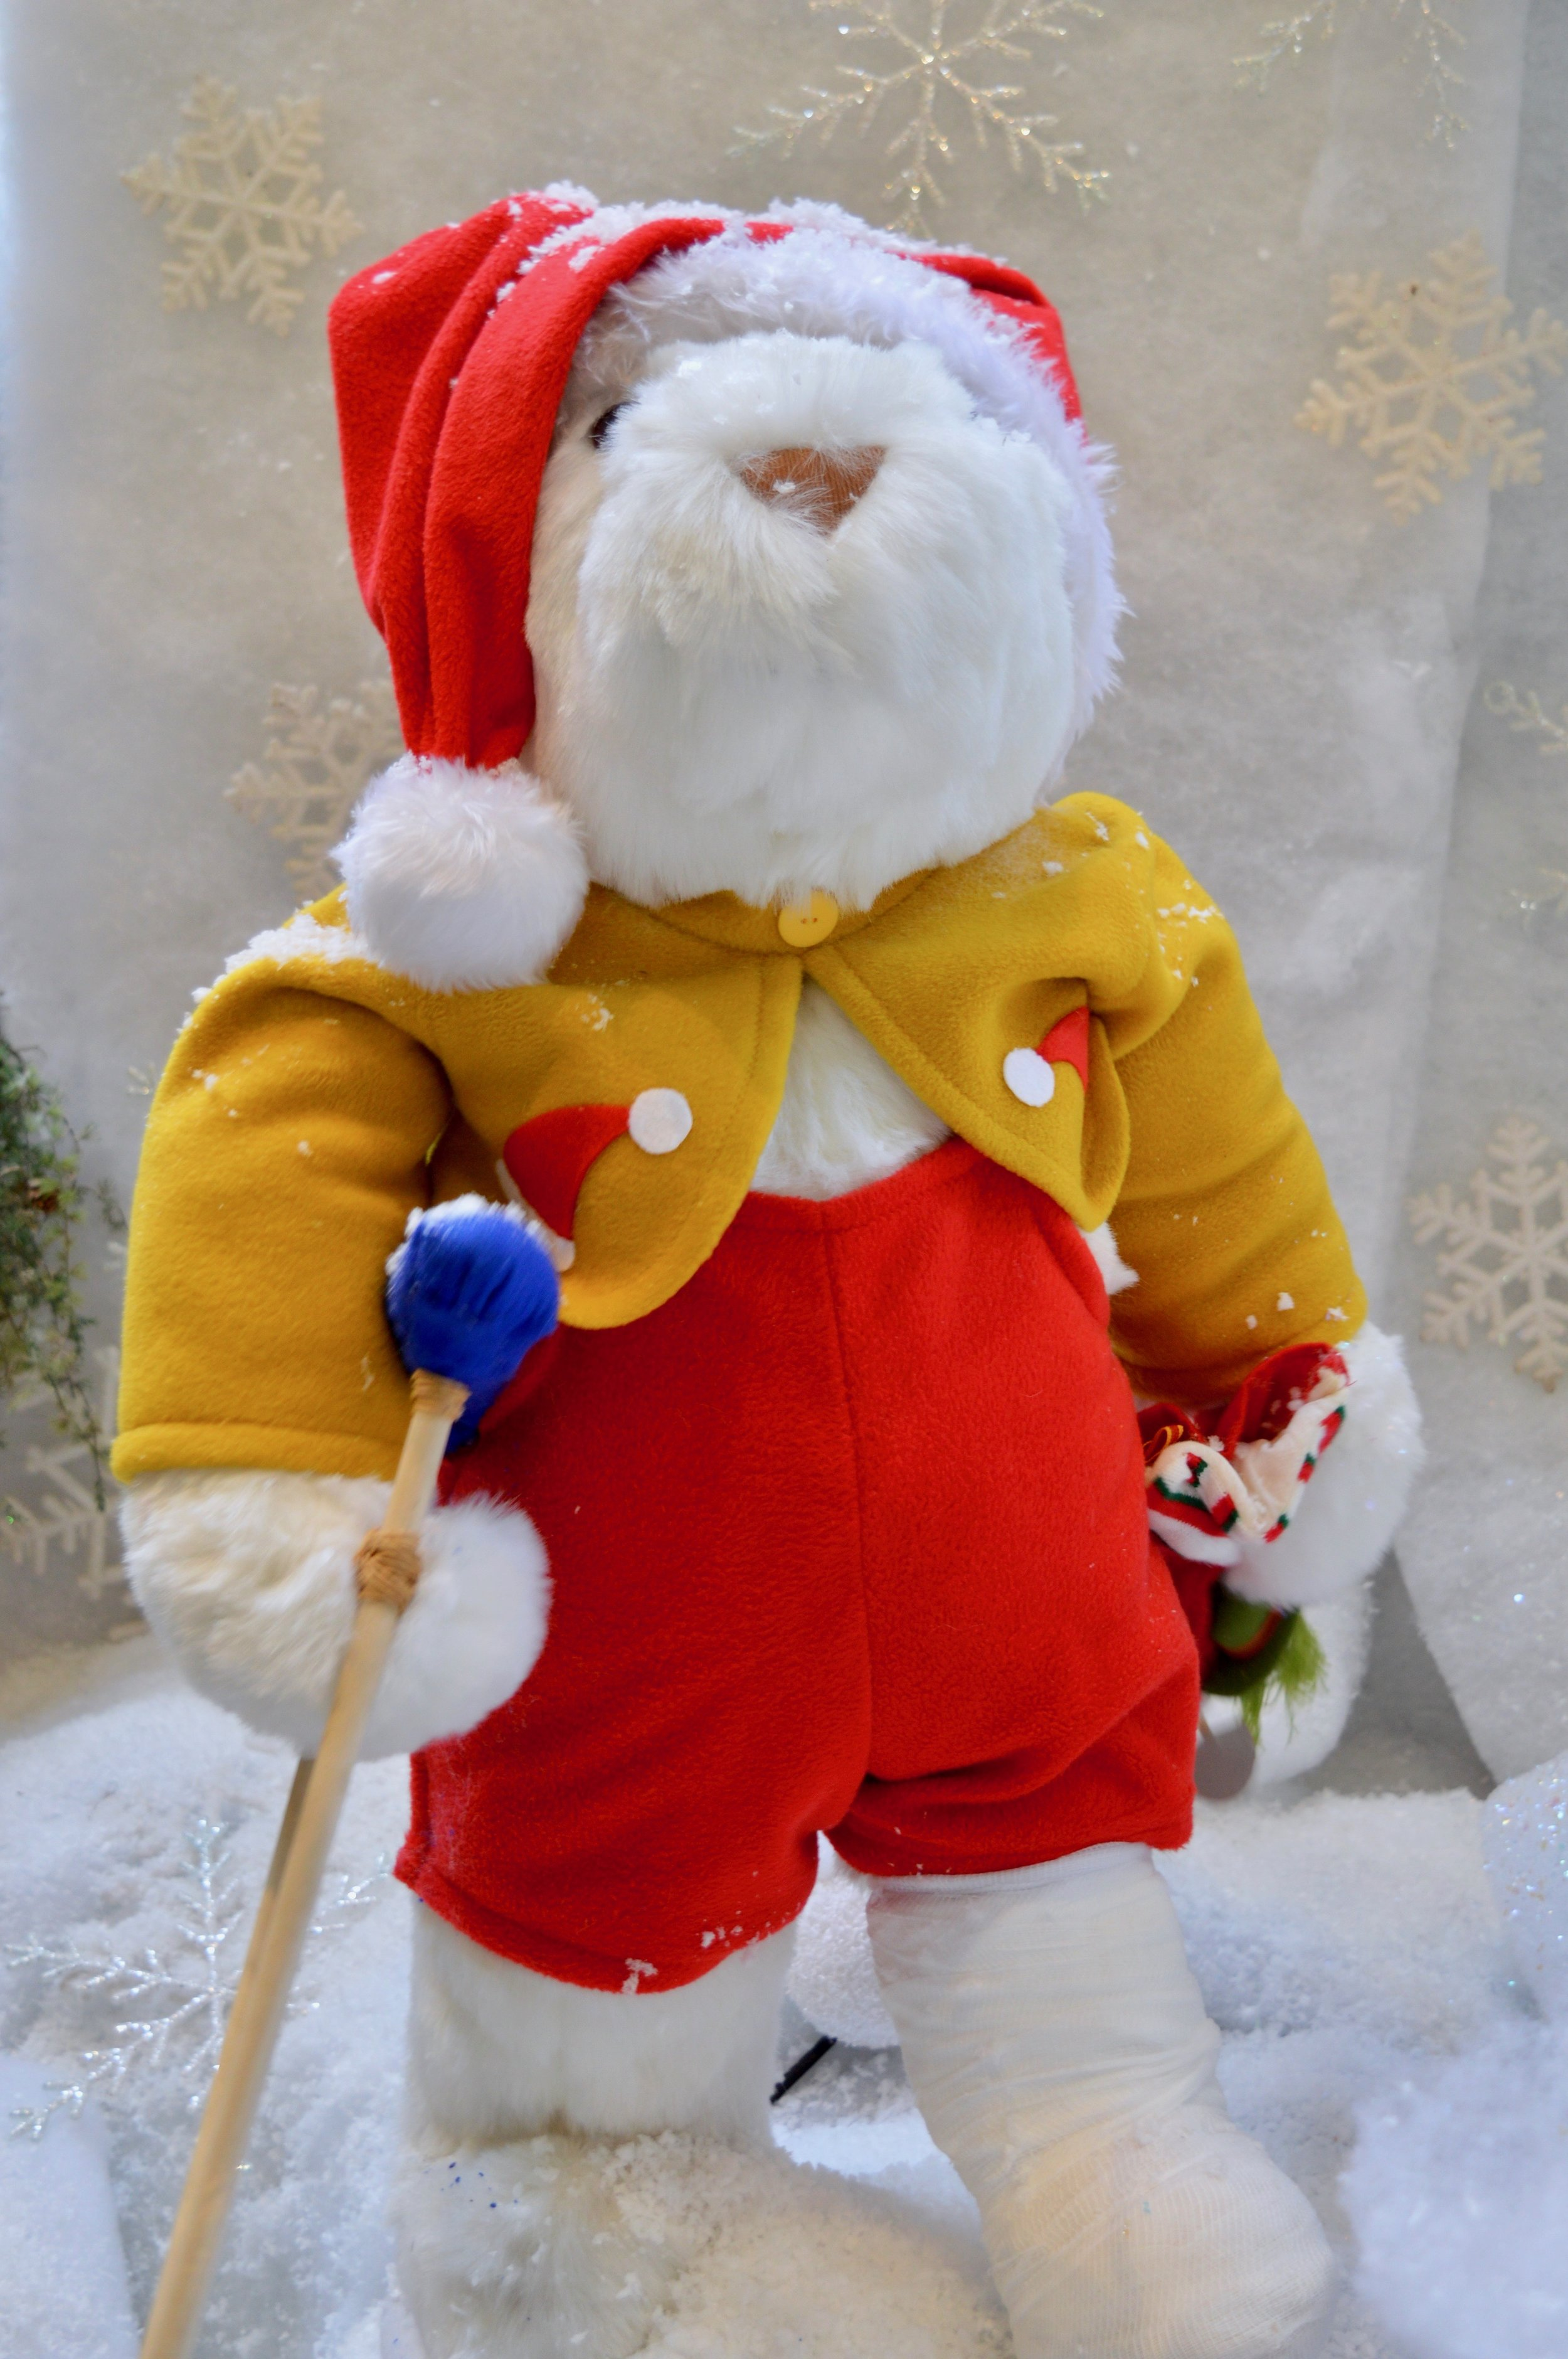 hire - Or if you wish, we have animation bears, Penguins, reindeer to hire for you to create your own Christmas displays.